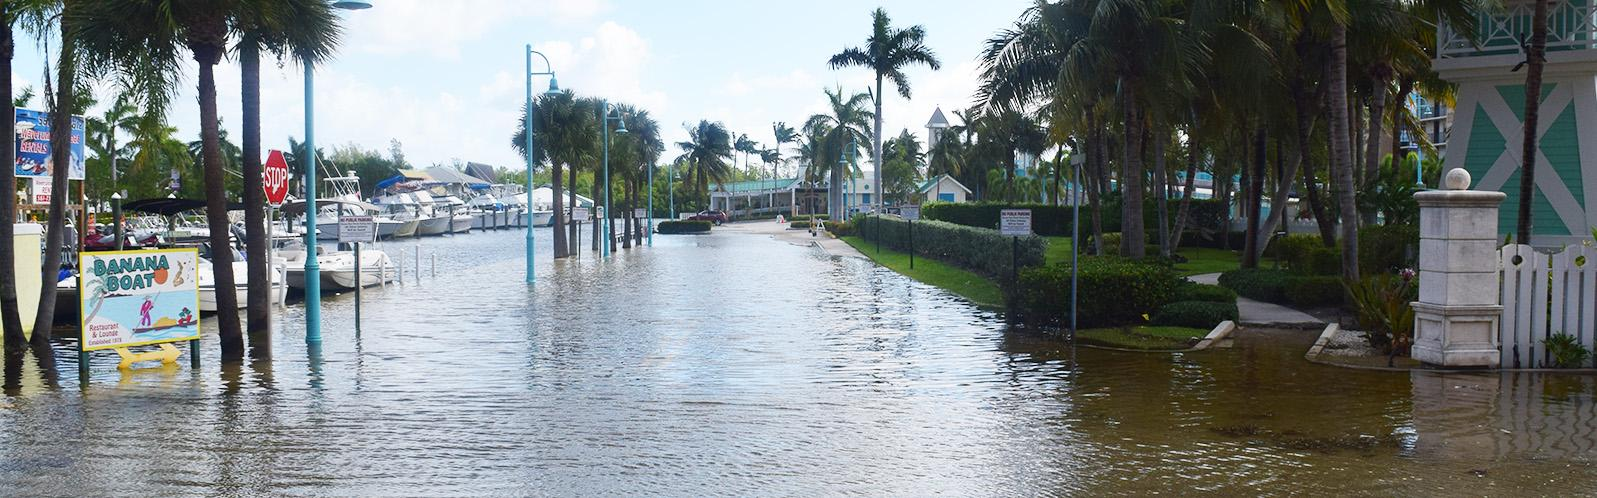 Flood Information City Of Boynton Beach